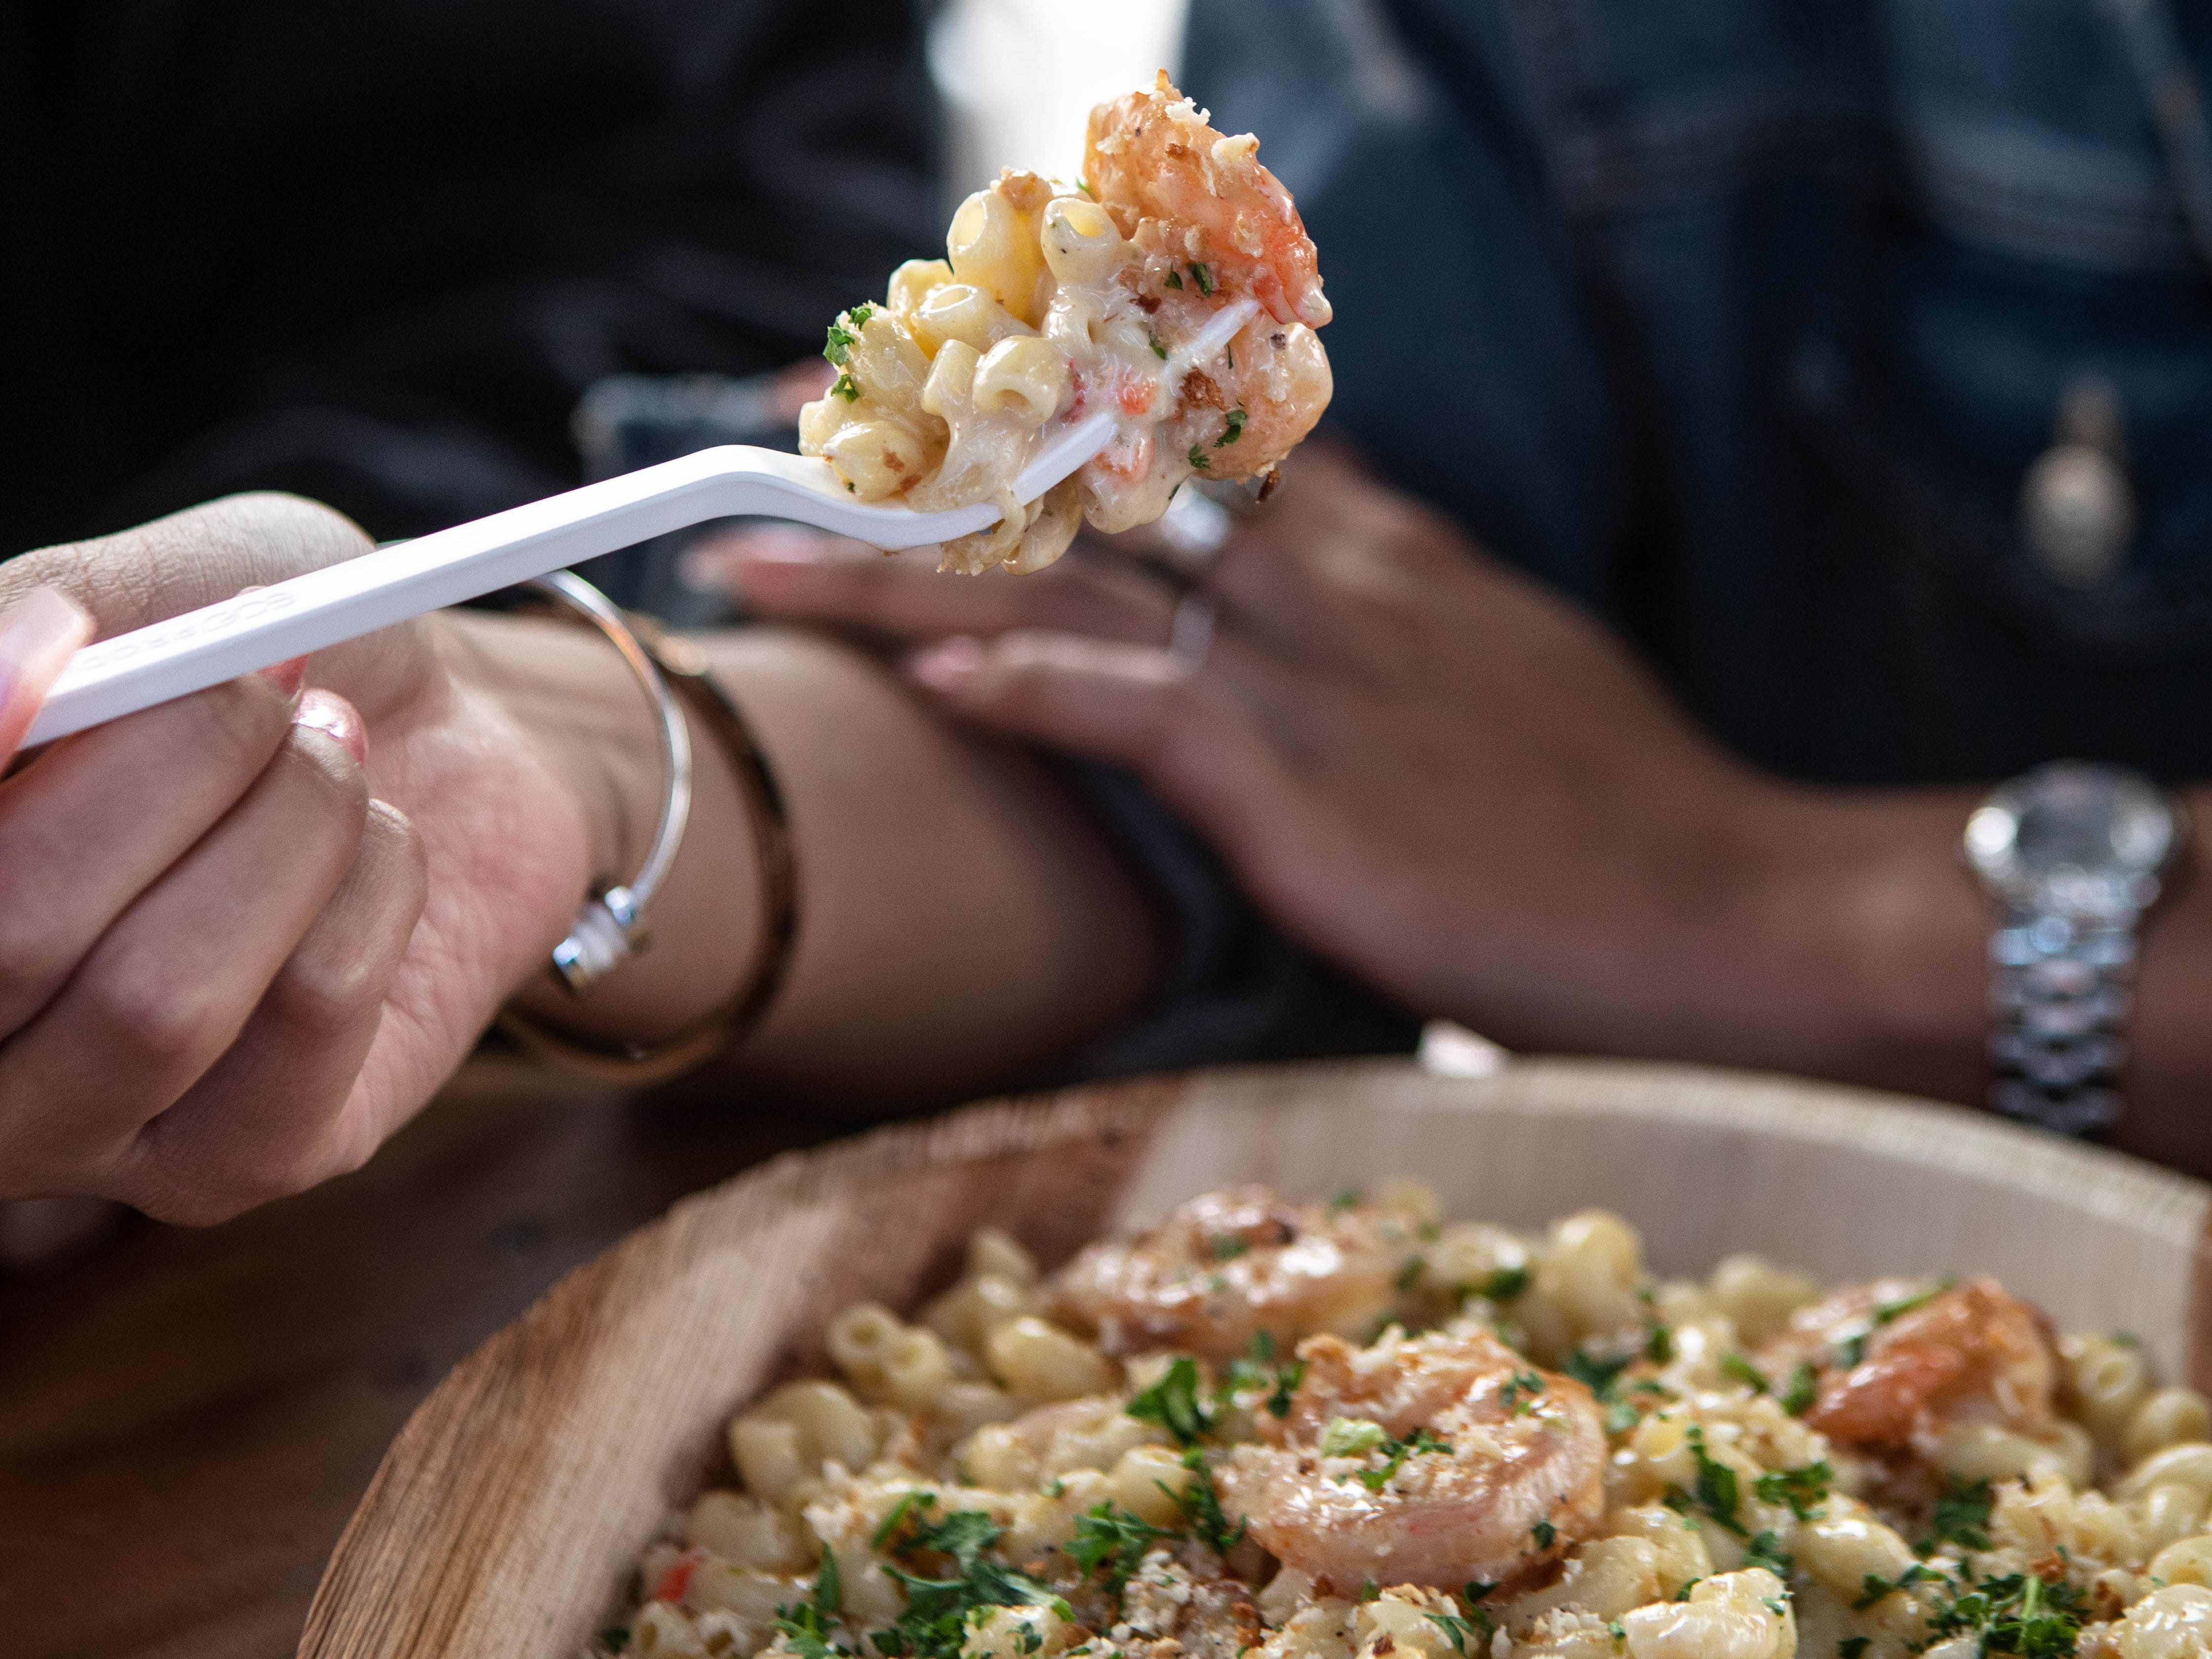 One of the most popular items so far at Tempe's new Varsity Tavern has been Blackened Shrimp Green Chile Mac n' Cheese.